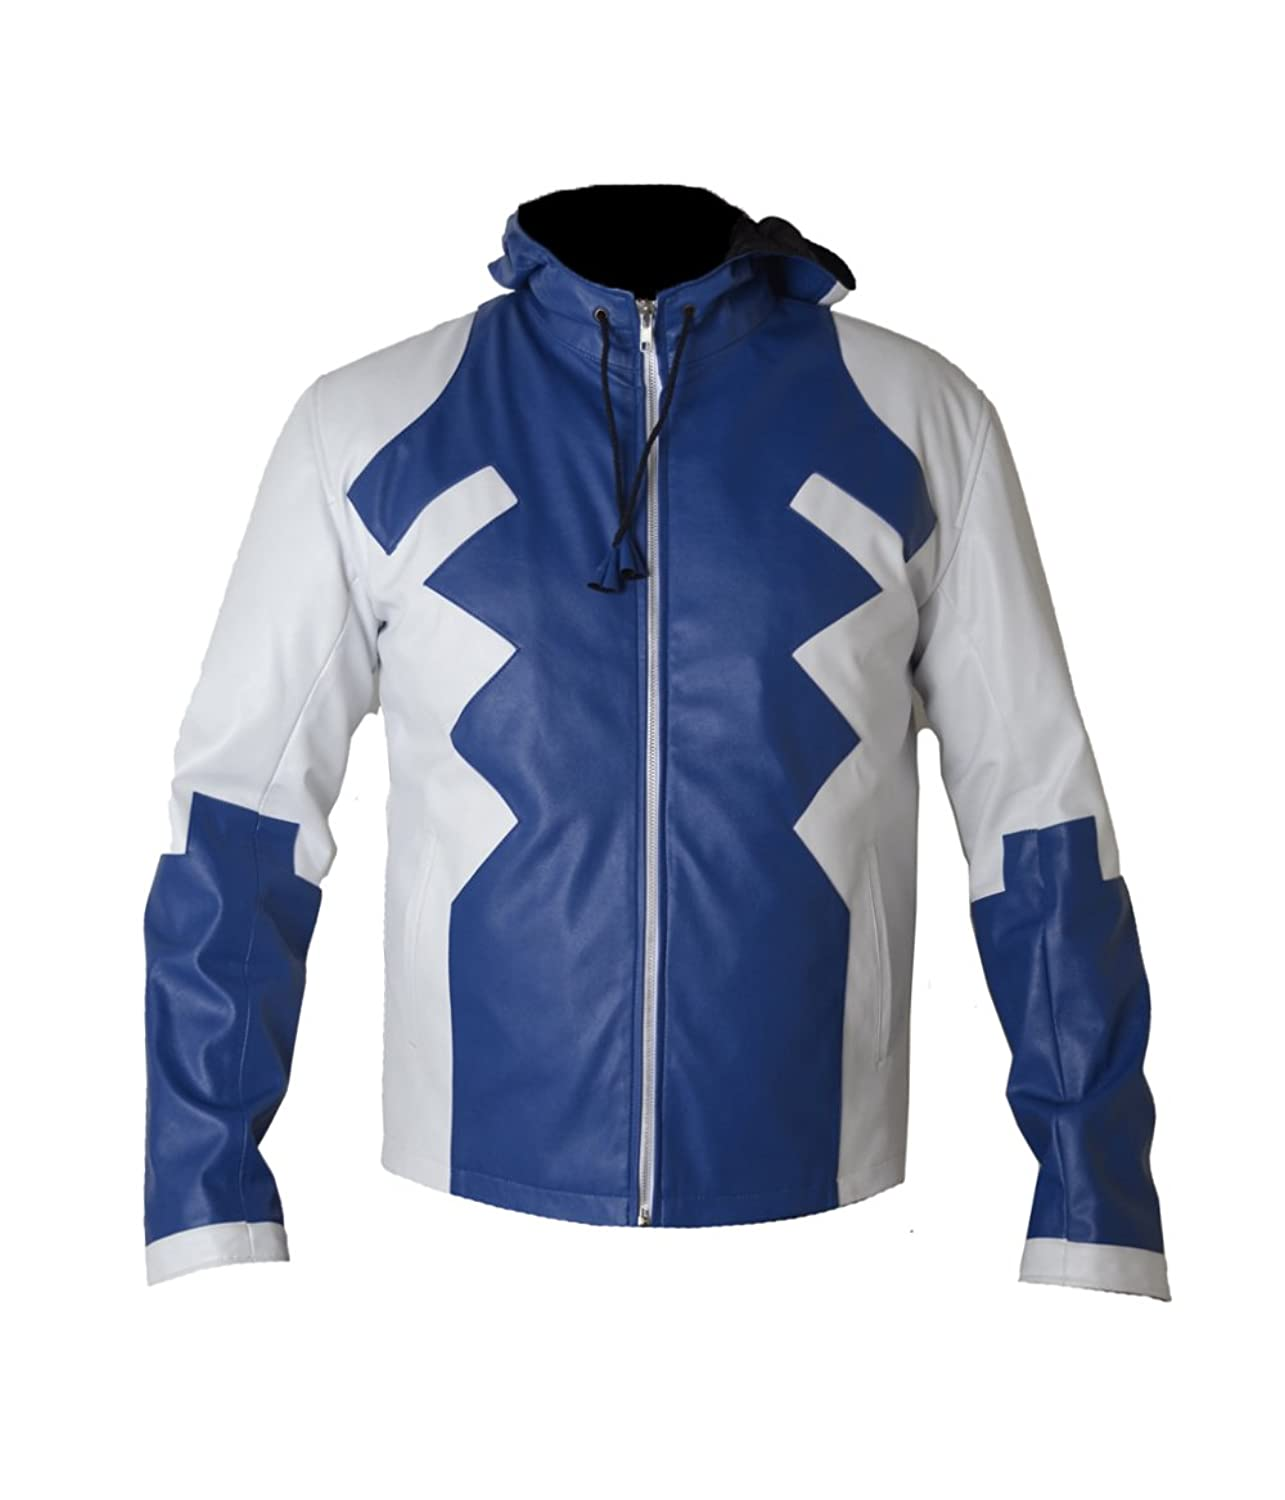 Deadpool V2 Blue And White Real Sheep Leather Jacket with Hoody